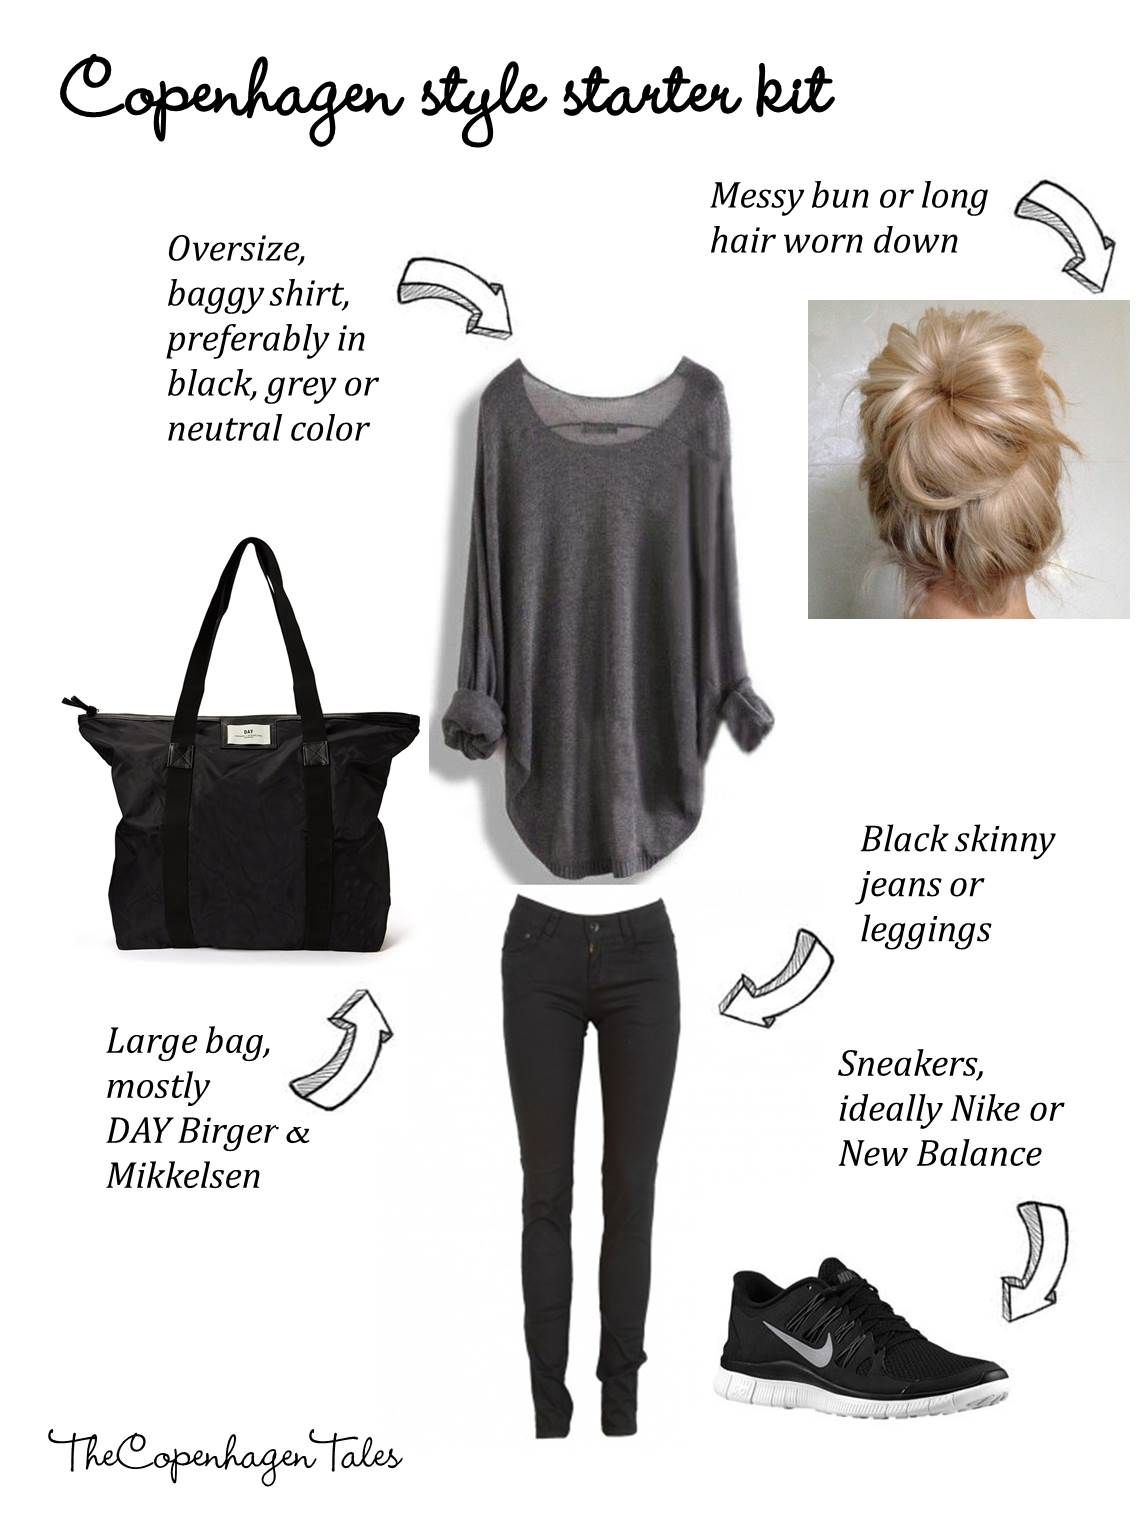 An easy starter kit for Copenhagen style - How to look like a local! via